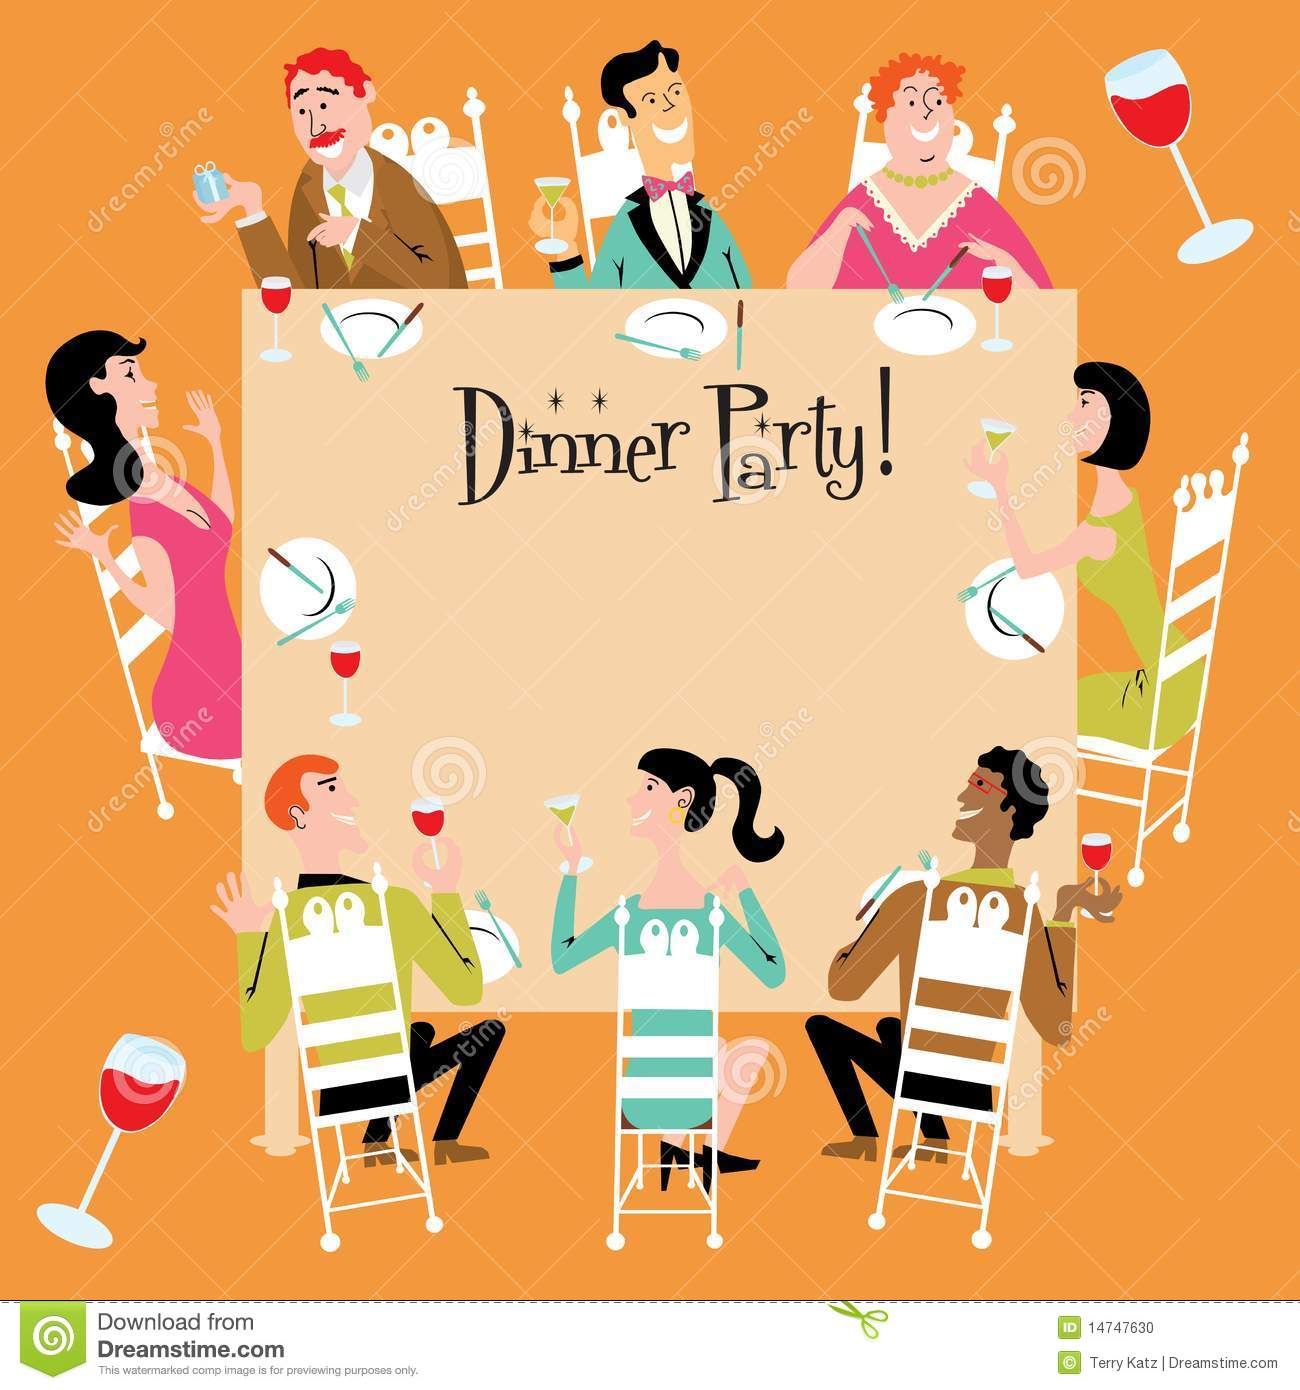 business dinner party clip art dinner party invitation a business dinner party clip art dinner party invitation a